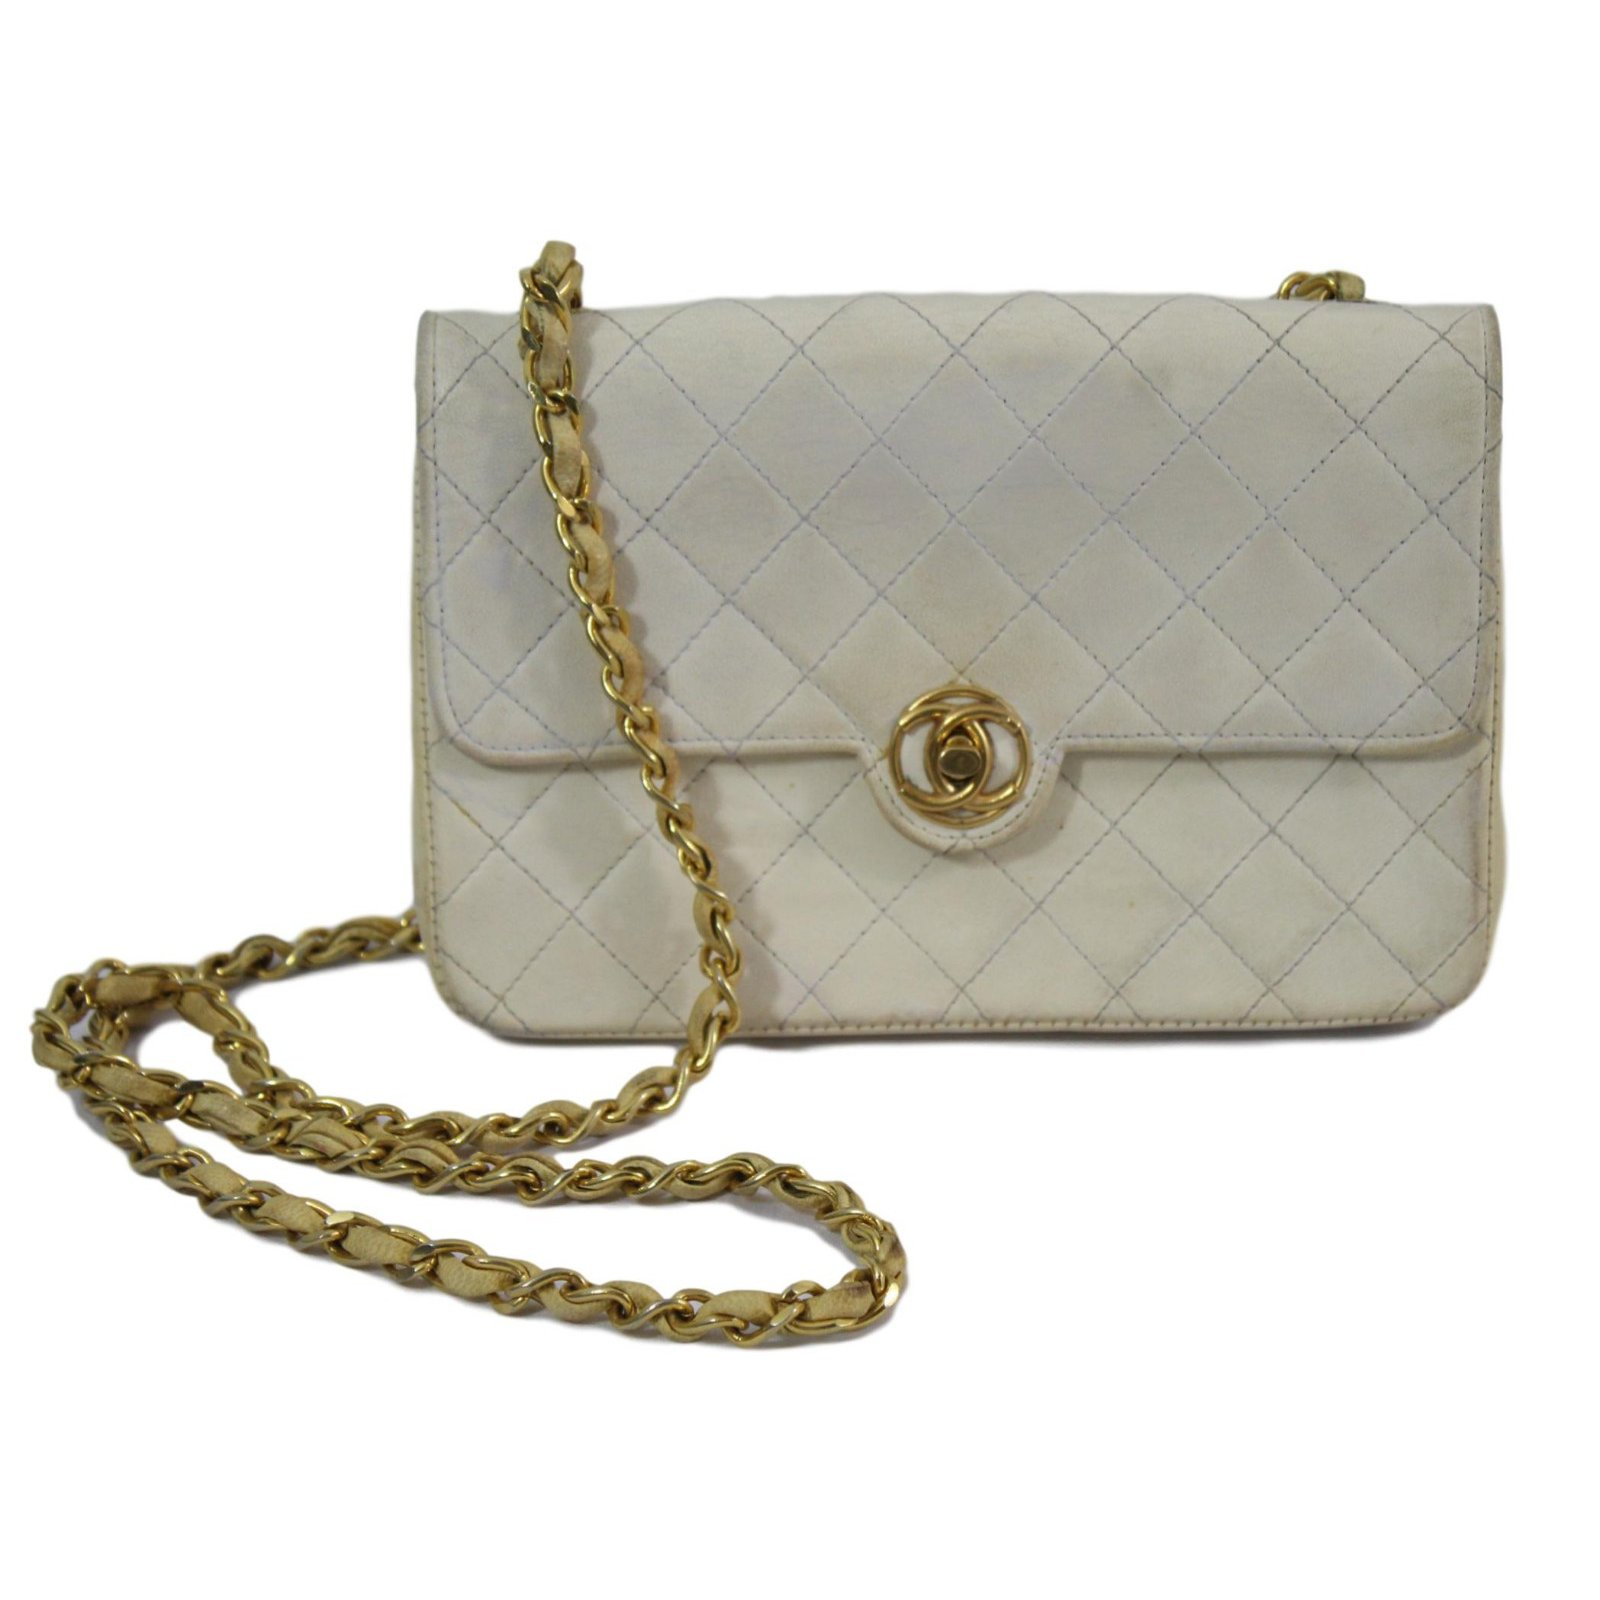 Chanel Handbags Handbags Leather White ref.77150 - Joli Closet cf74495d709de